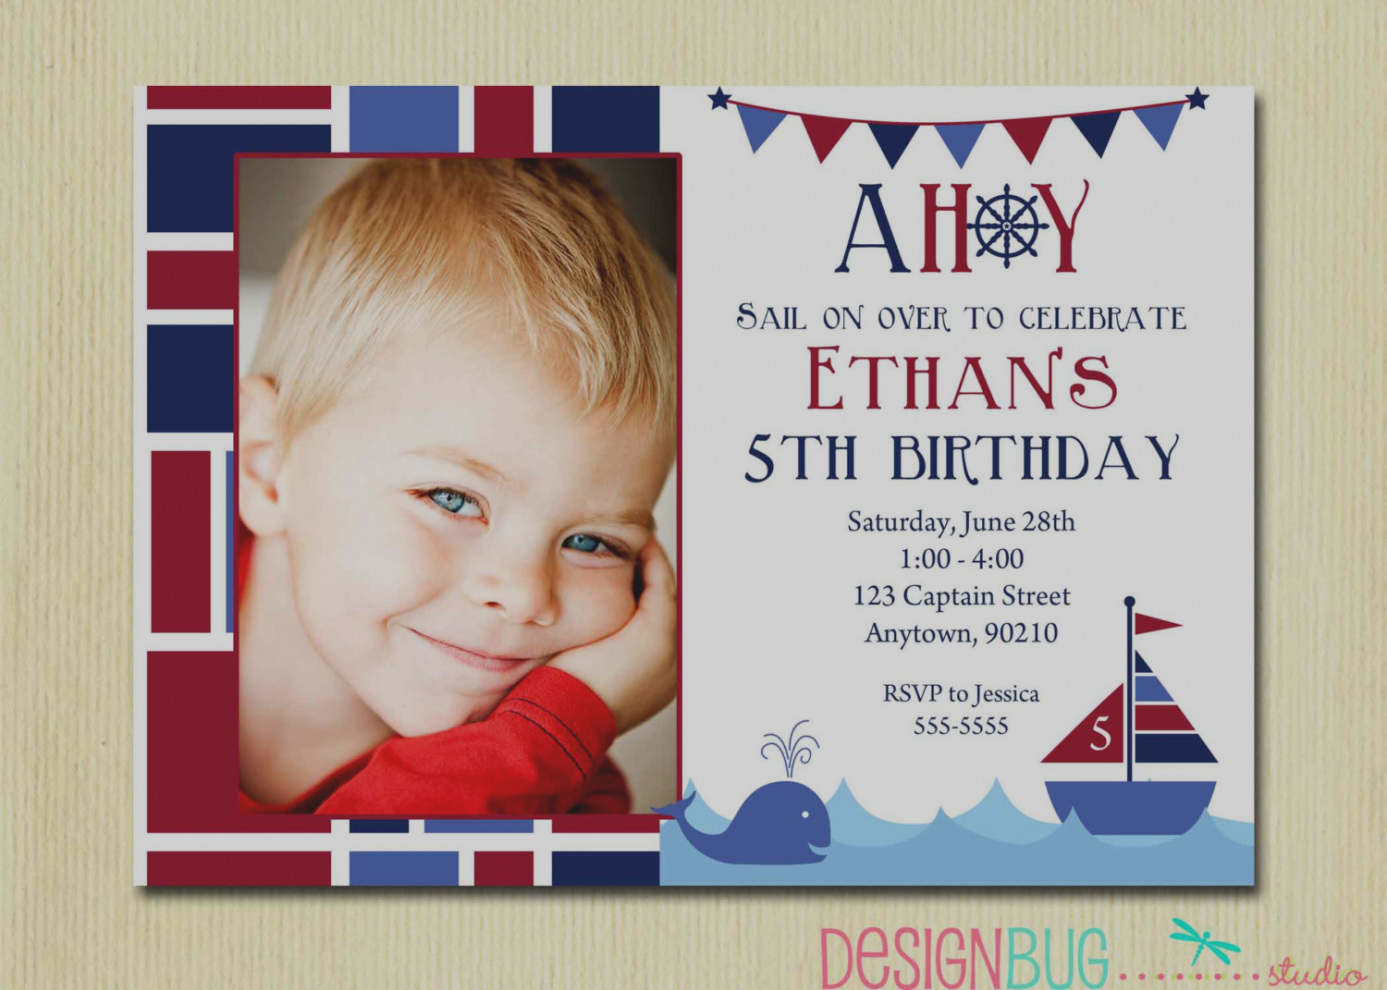 5 year old boy birthday card ideas ; new-of-birthday-invitation-wording-for-5-year-old-boy-best-party-ideas